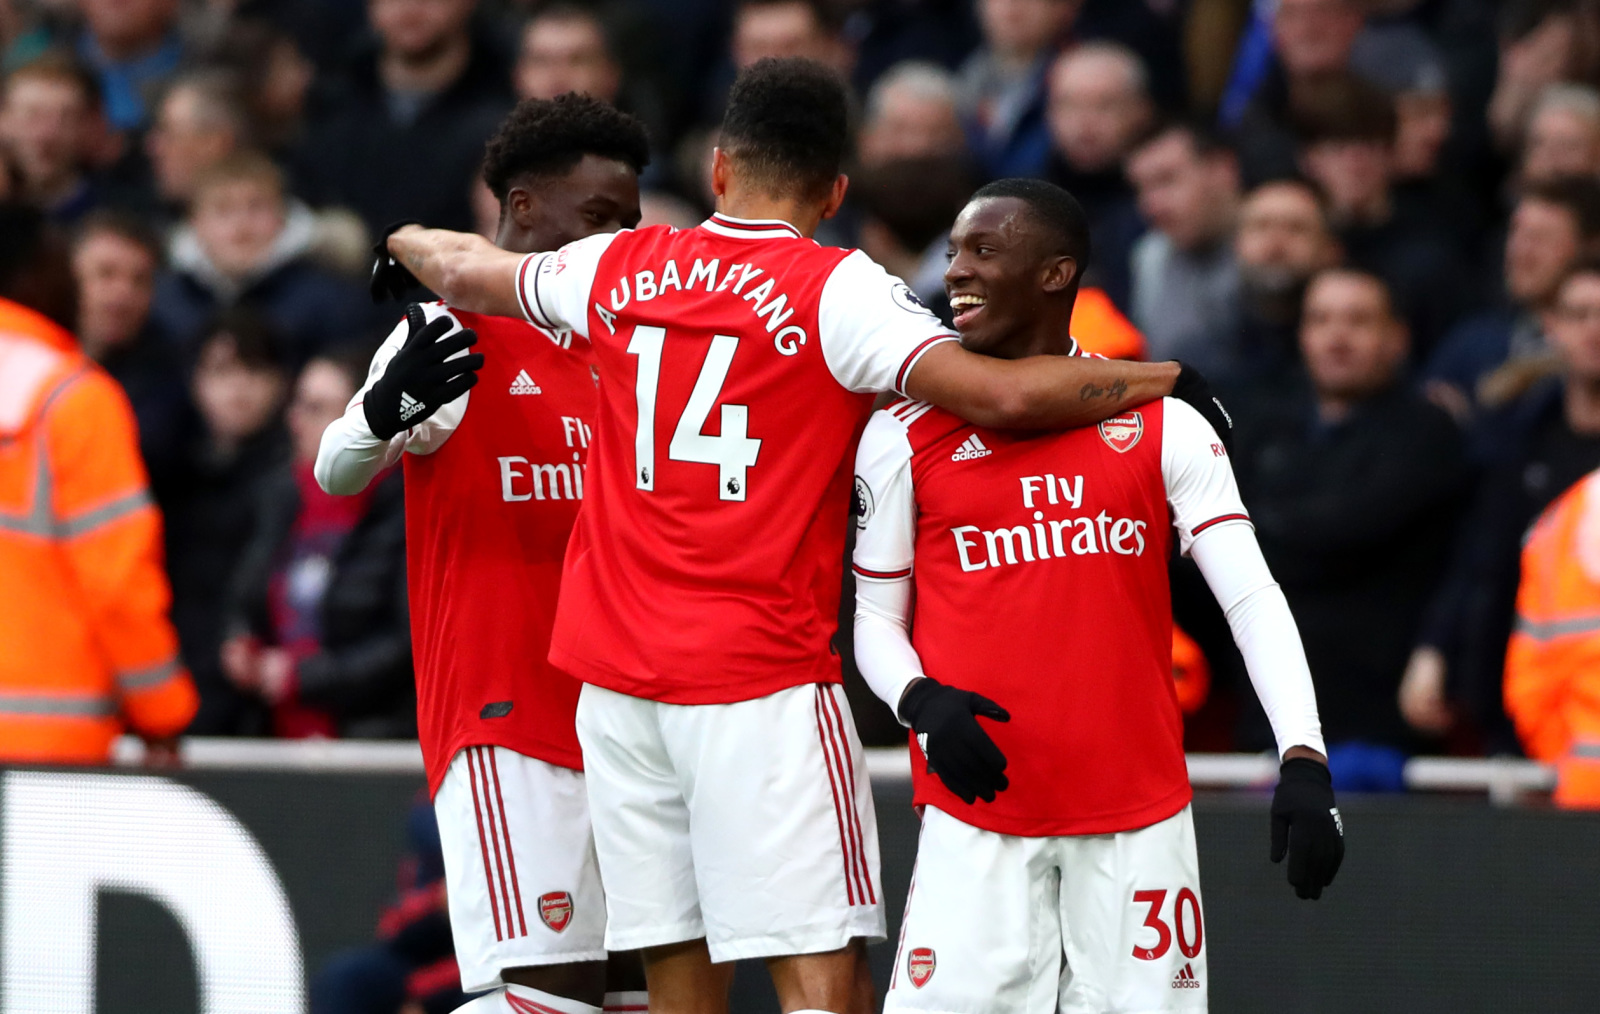 Arsenal win consecutive matches for first time since August